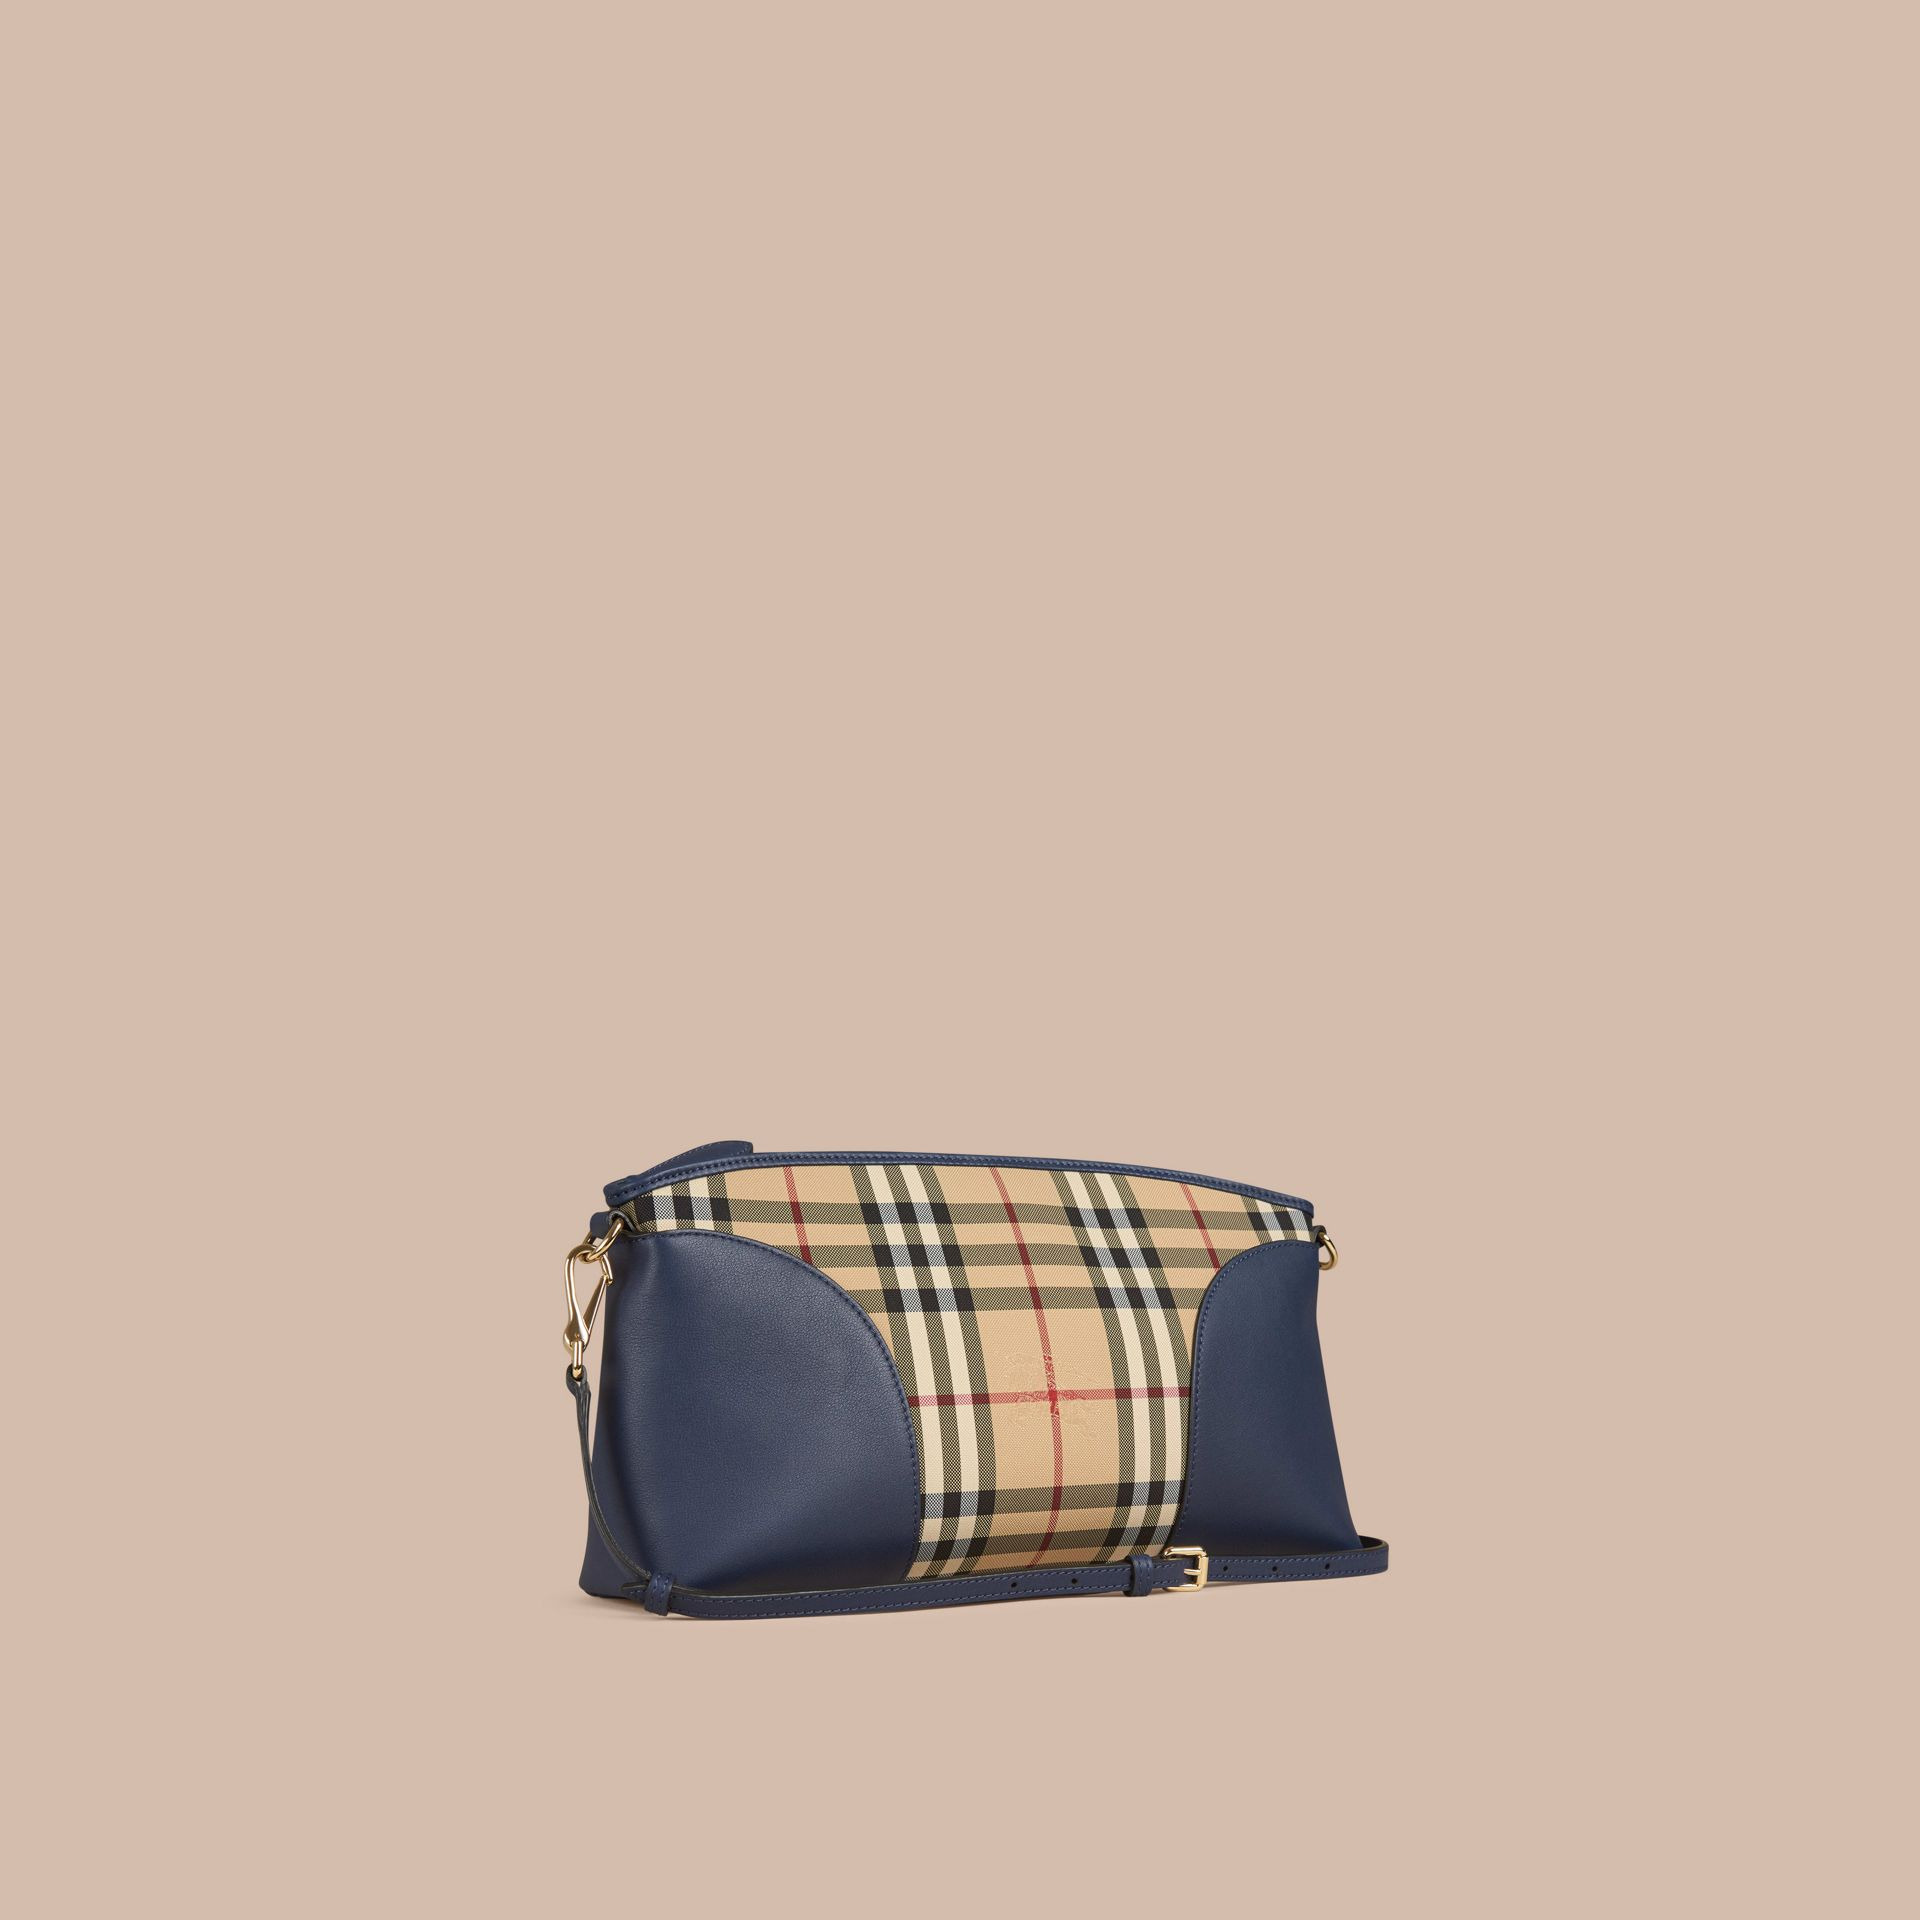 Honey/brilliant navy Horseferry Check and Leather Clutch Bag Honey/brilliant Navy - gallery image 1